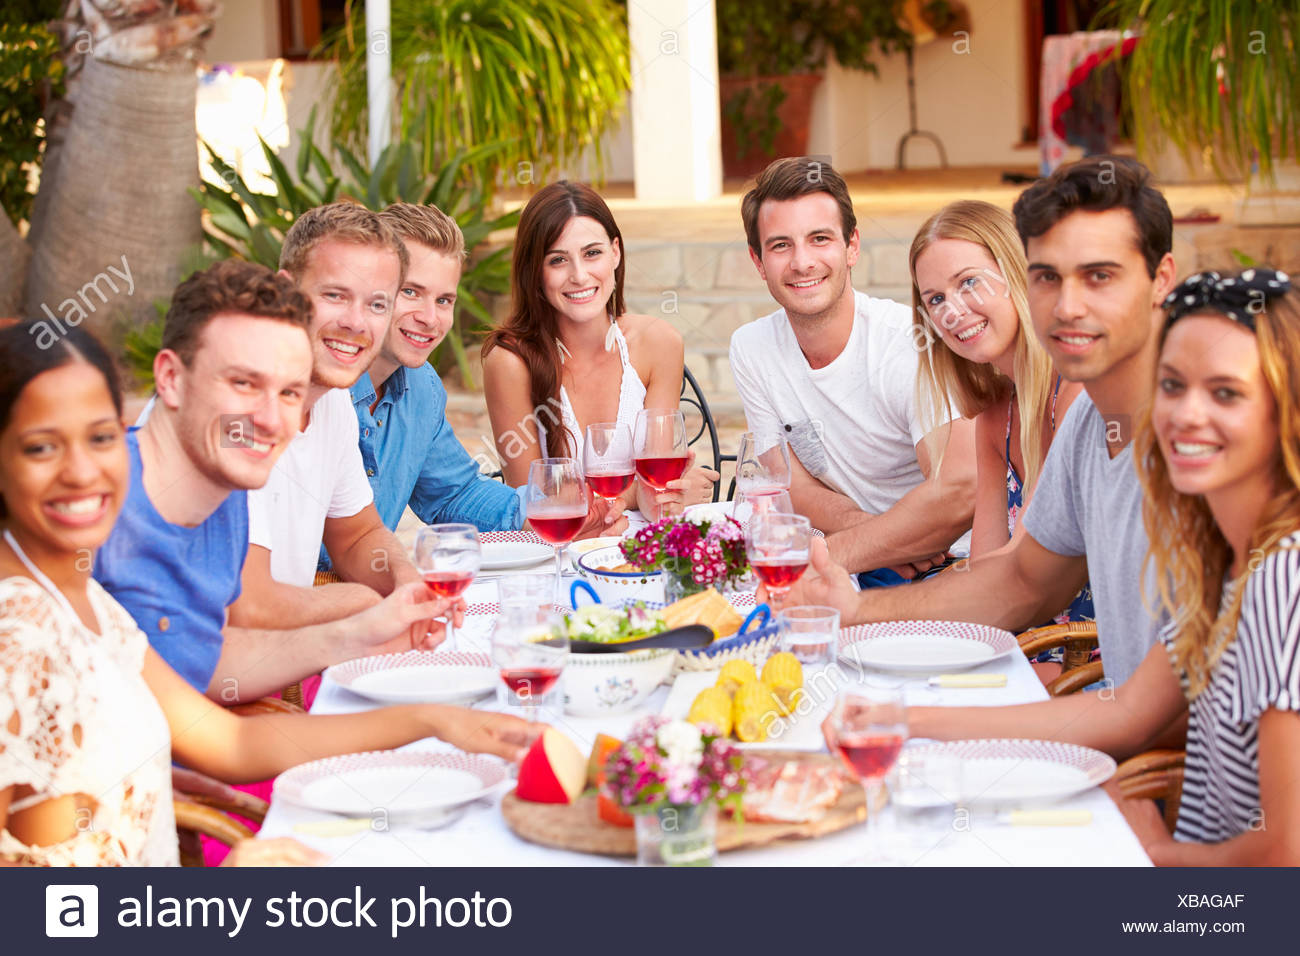 Large Group Of Young Friends Enjoying Outdoor Meal Together - Stock Image